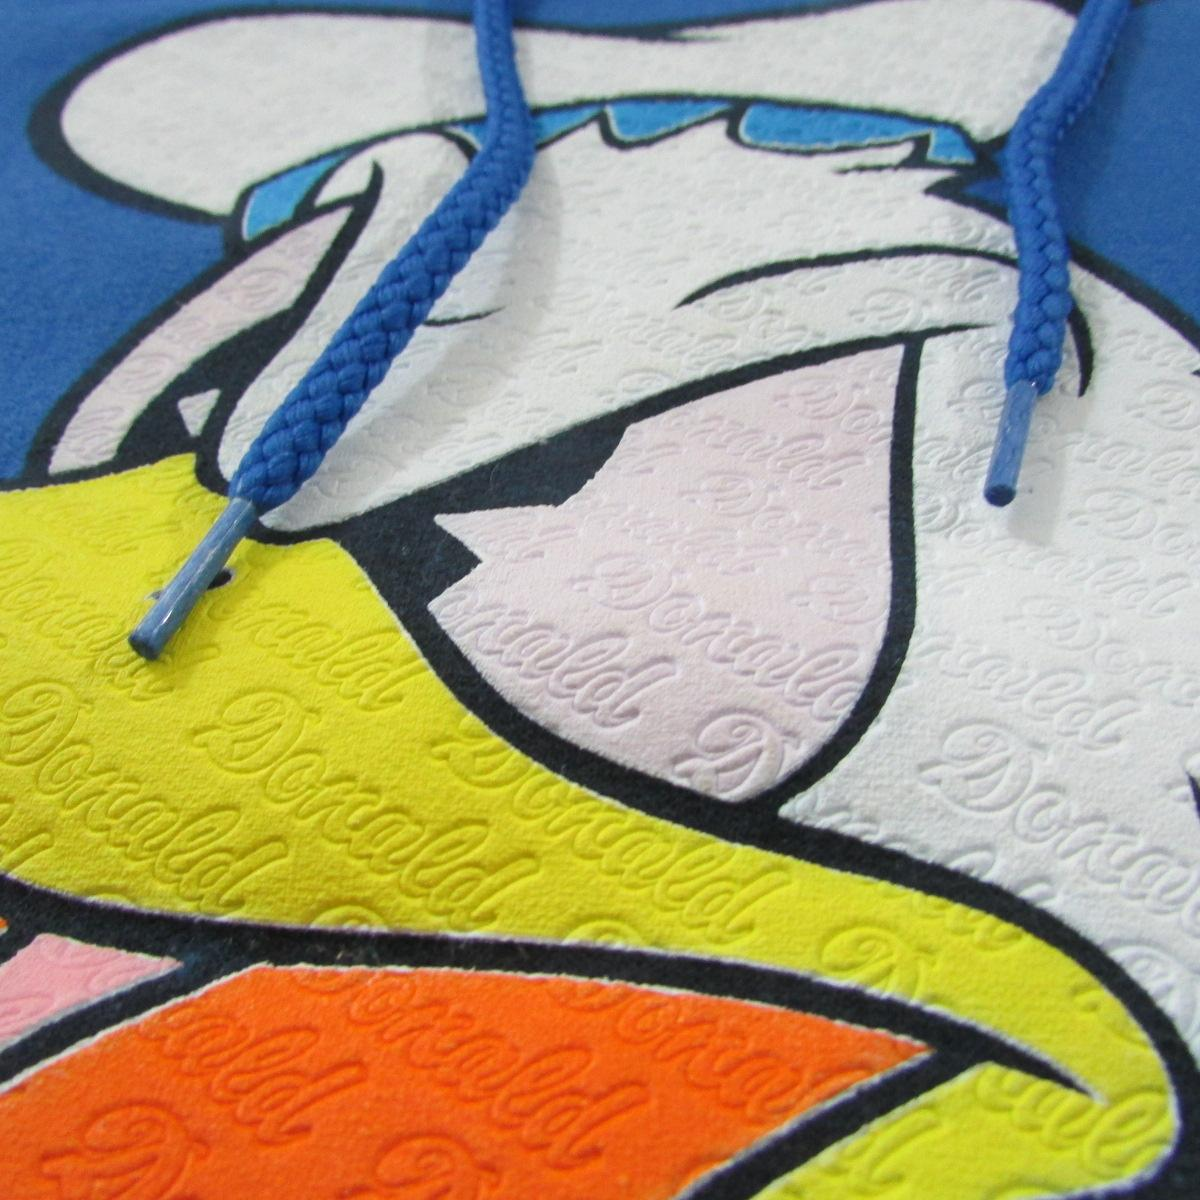 Walt Disney World Donald Duck Hoodie Sweater Sz M